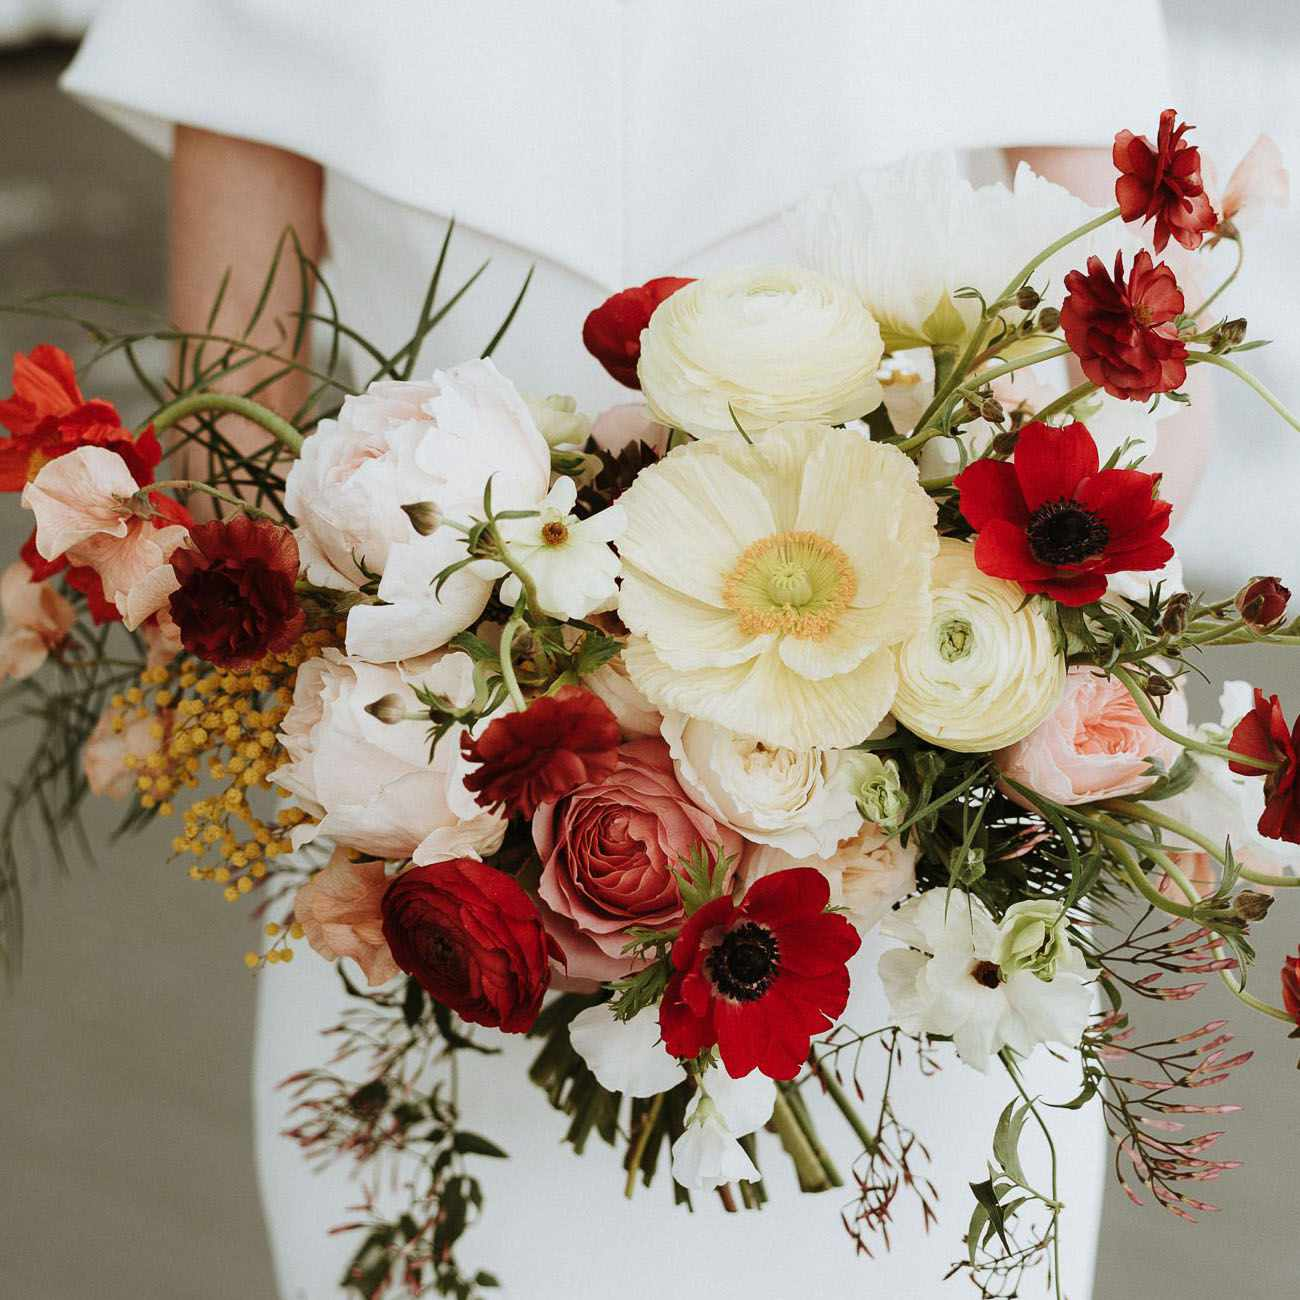 Bride holding a bouquet of red and white poppies